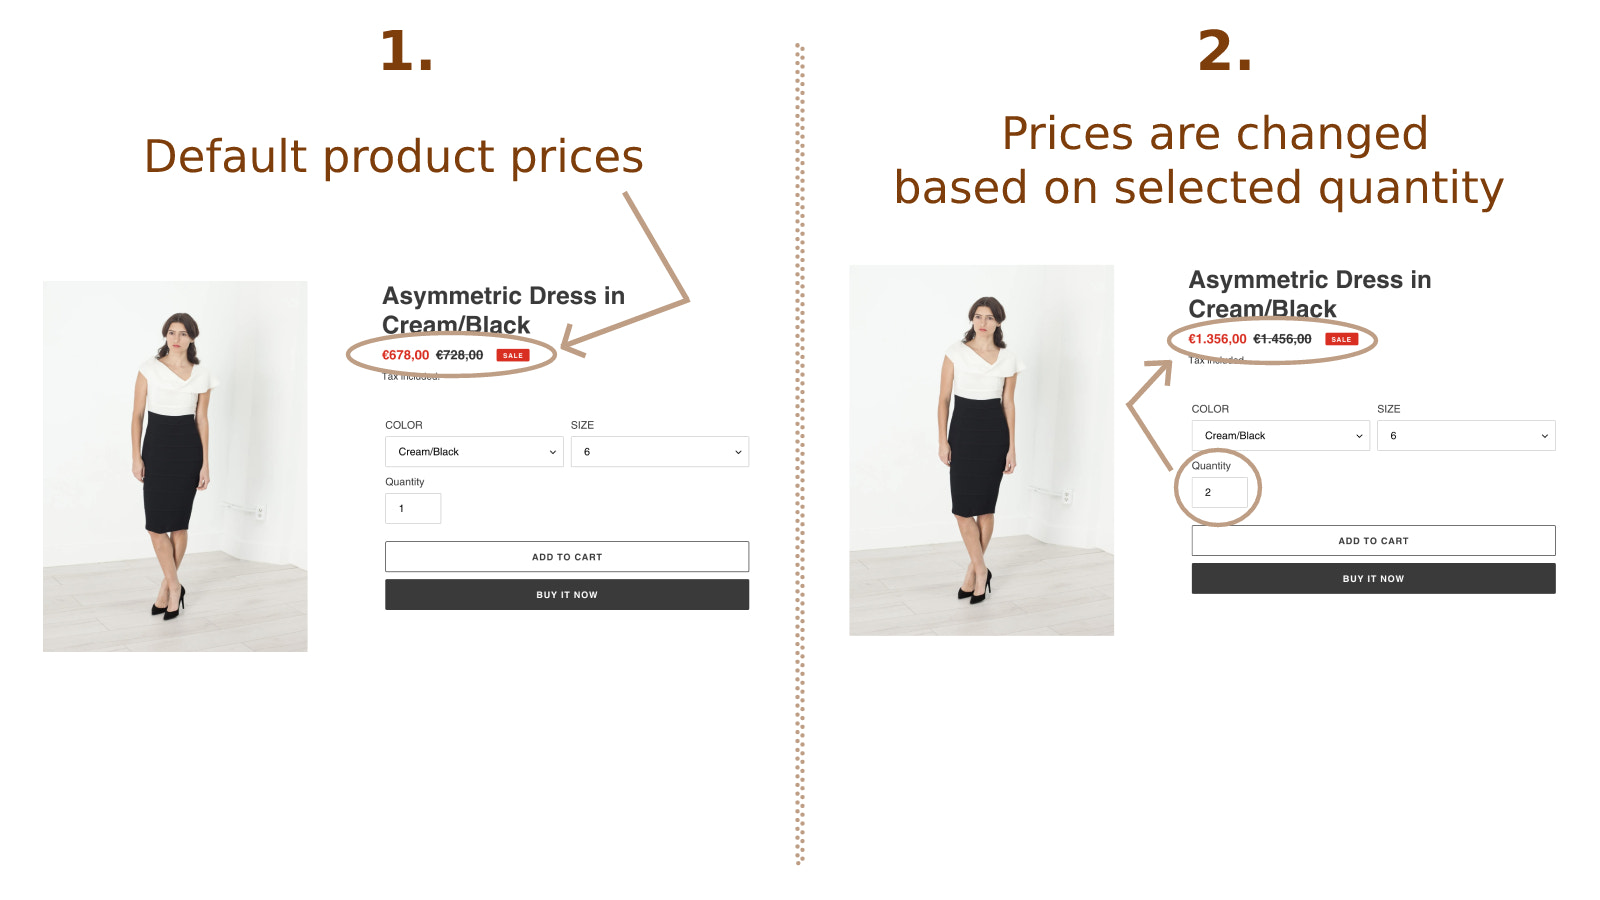 Prices are changed based on selected quantity in product detail